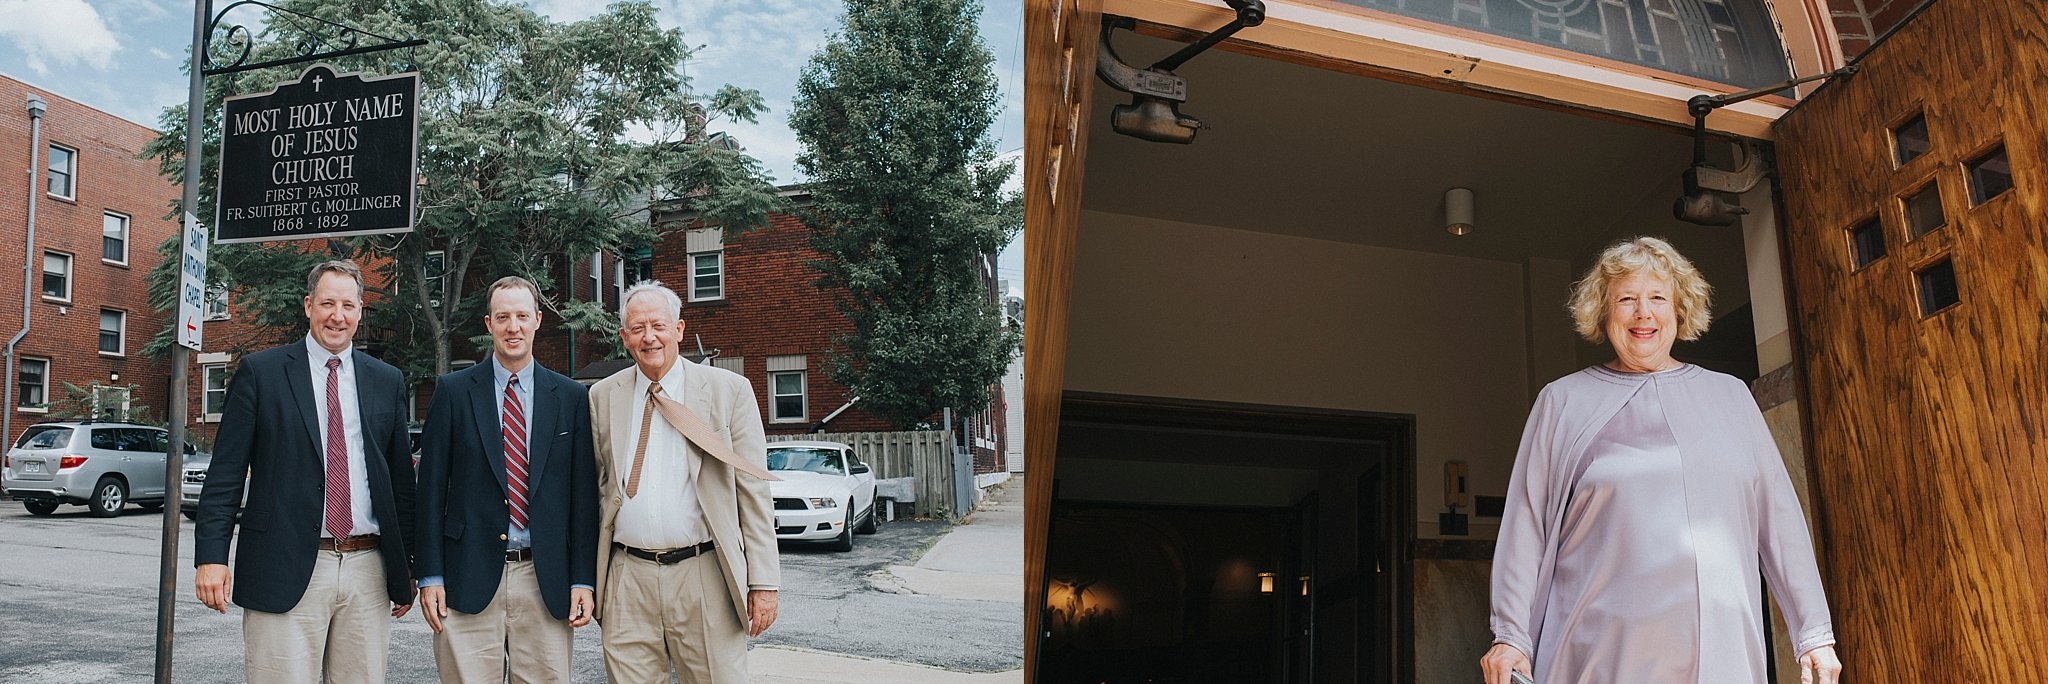 Wedding Pittsburgh - Elopement Photography by Sandrachile